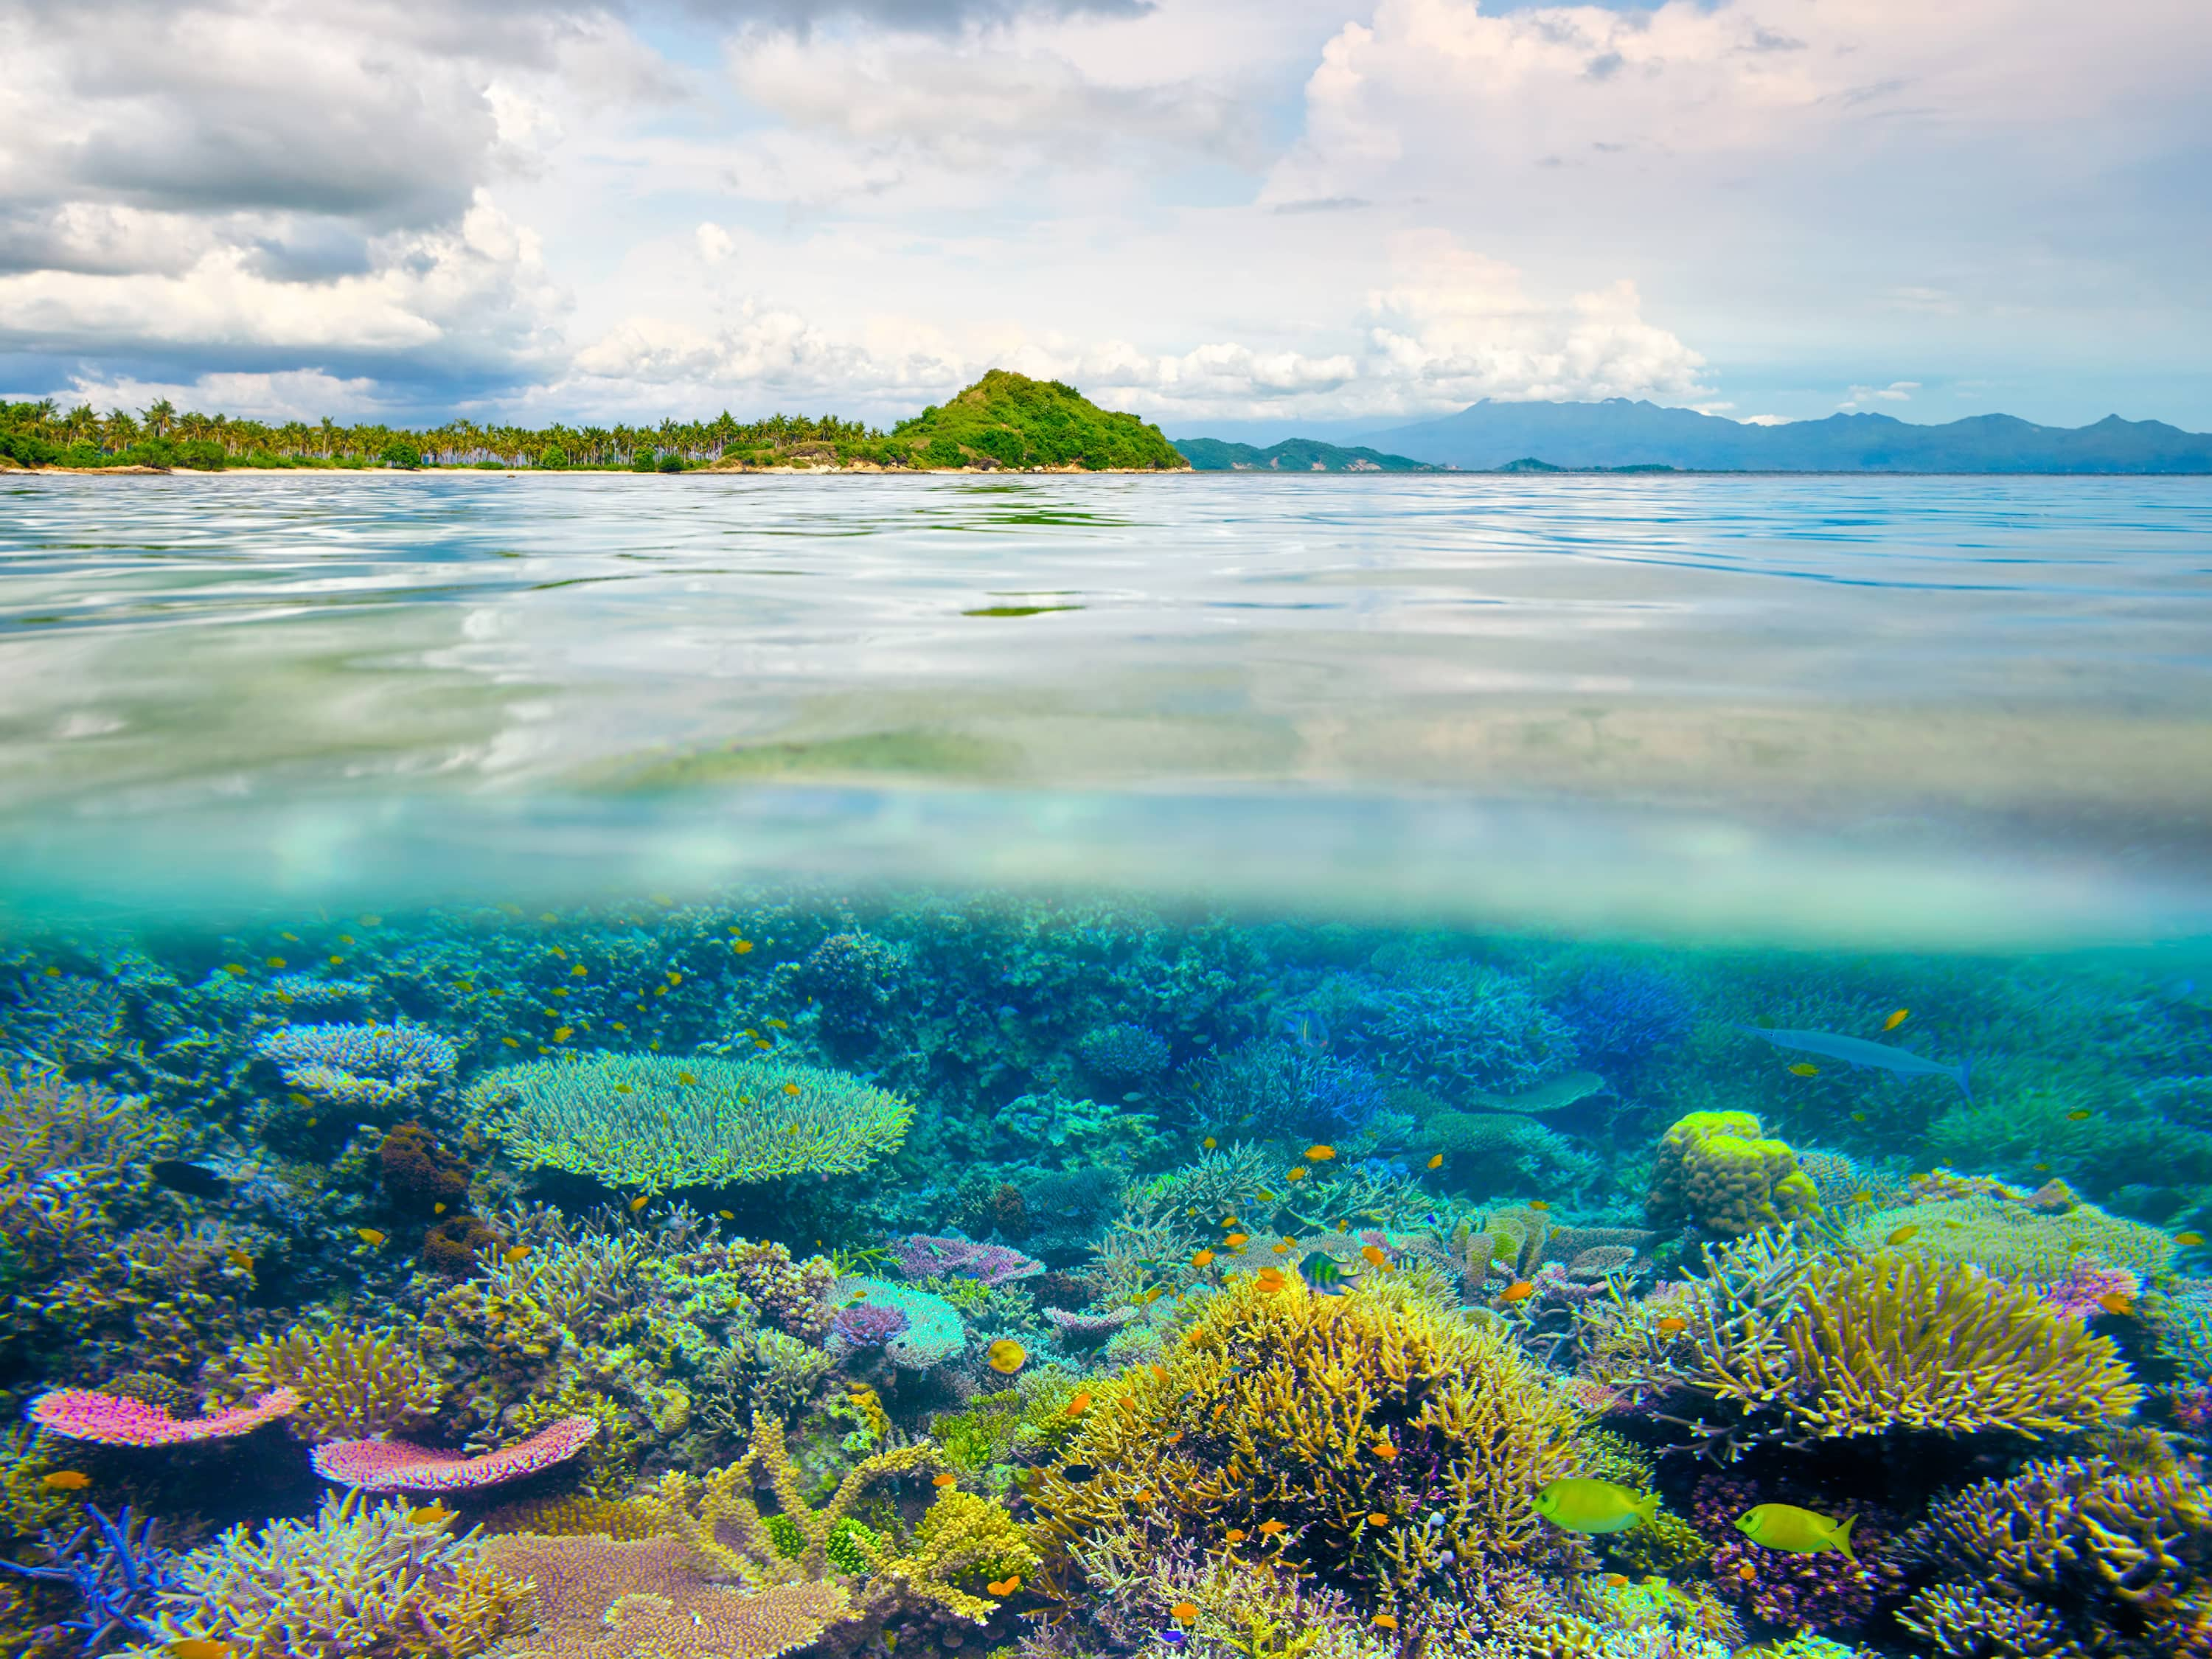 Marvel at the Splendour of the Great Barrier Reef